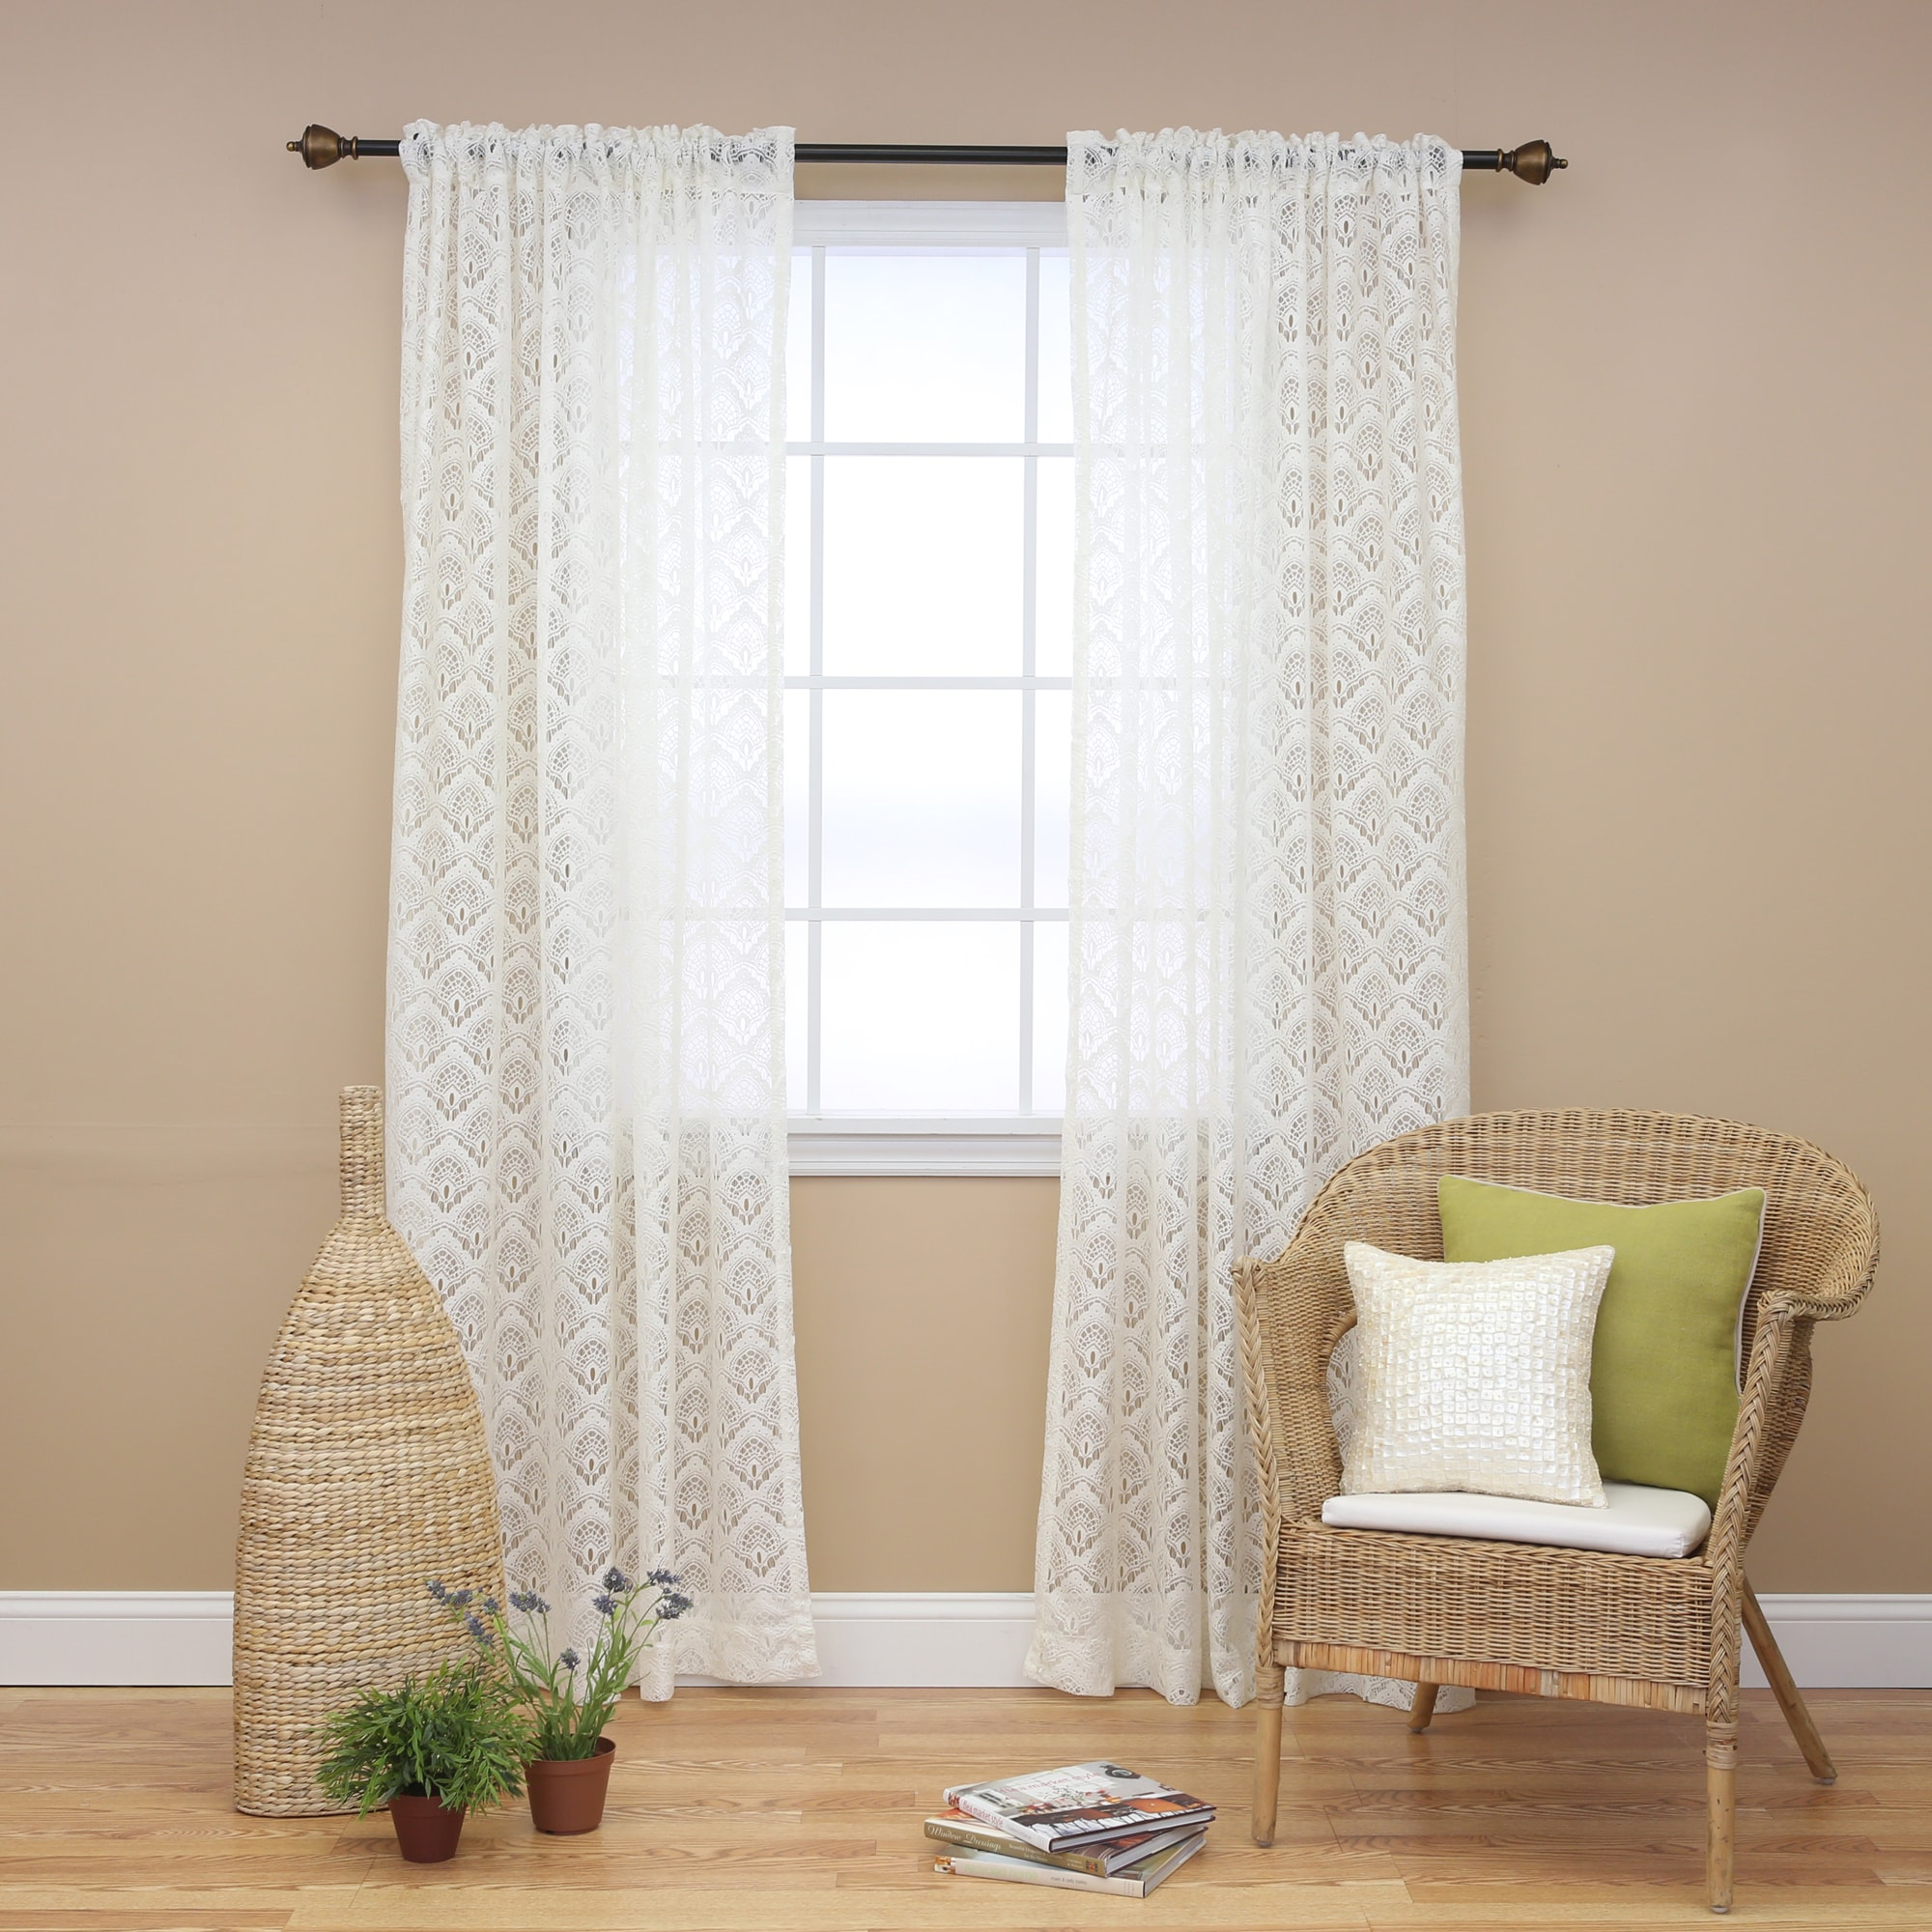 Aurora home ivory lace 84 inch curtain panel pair 14500367